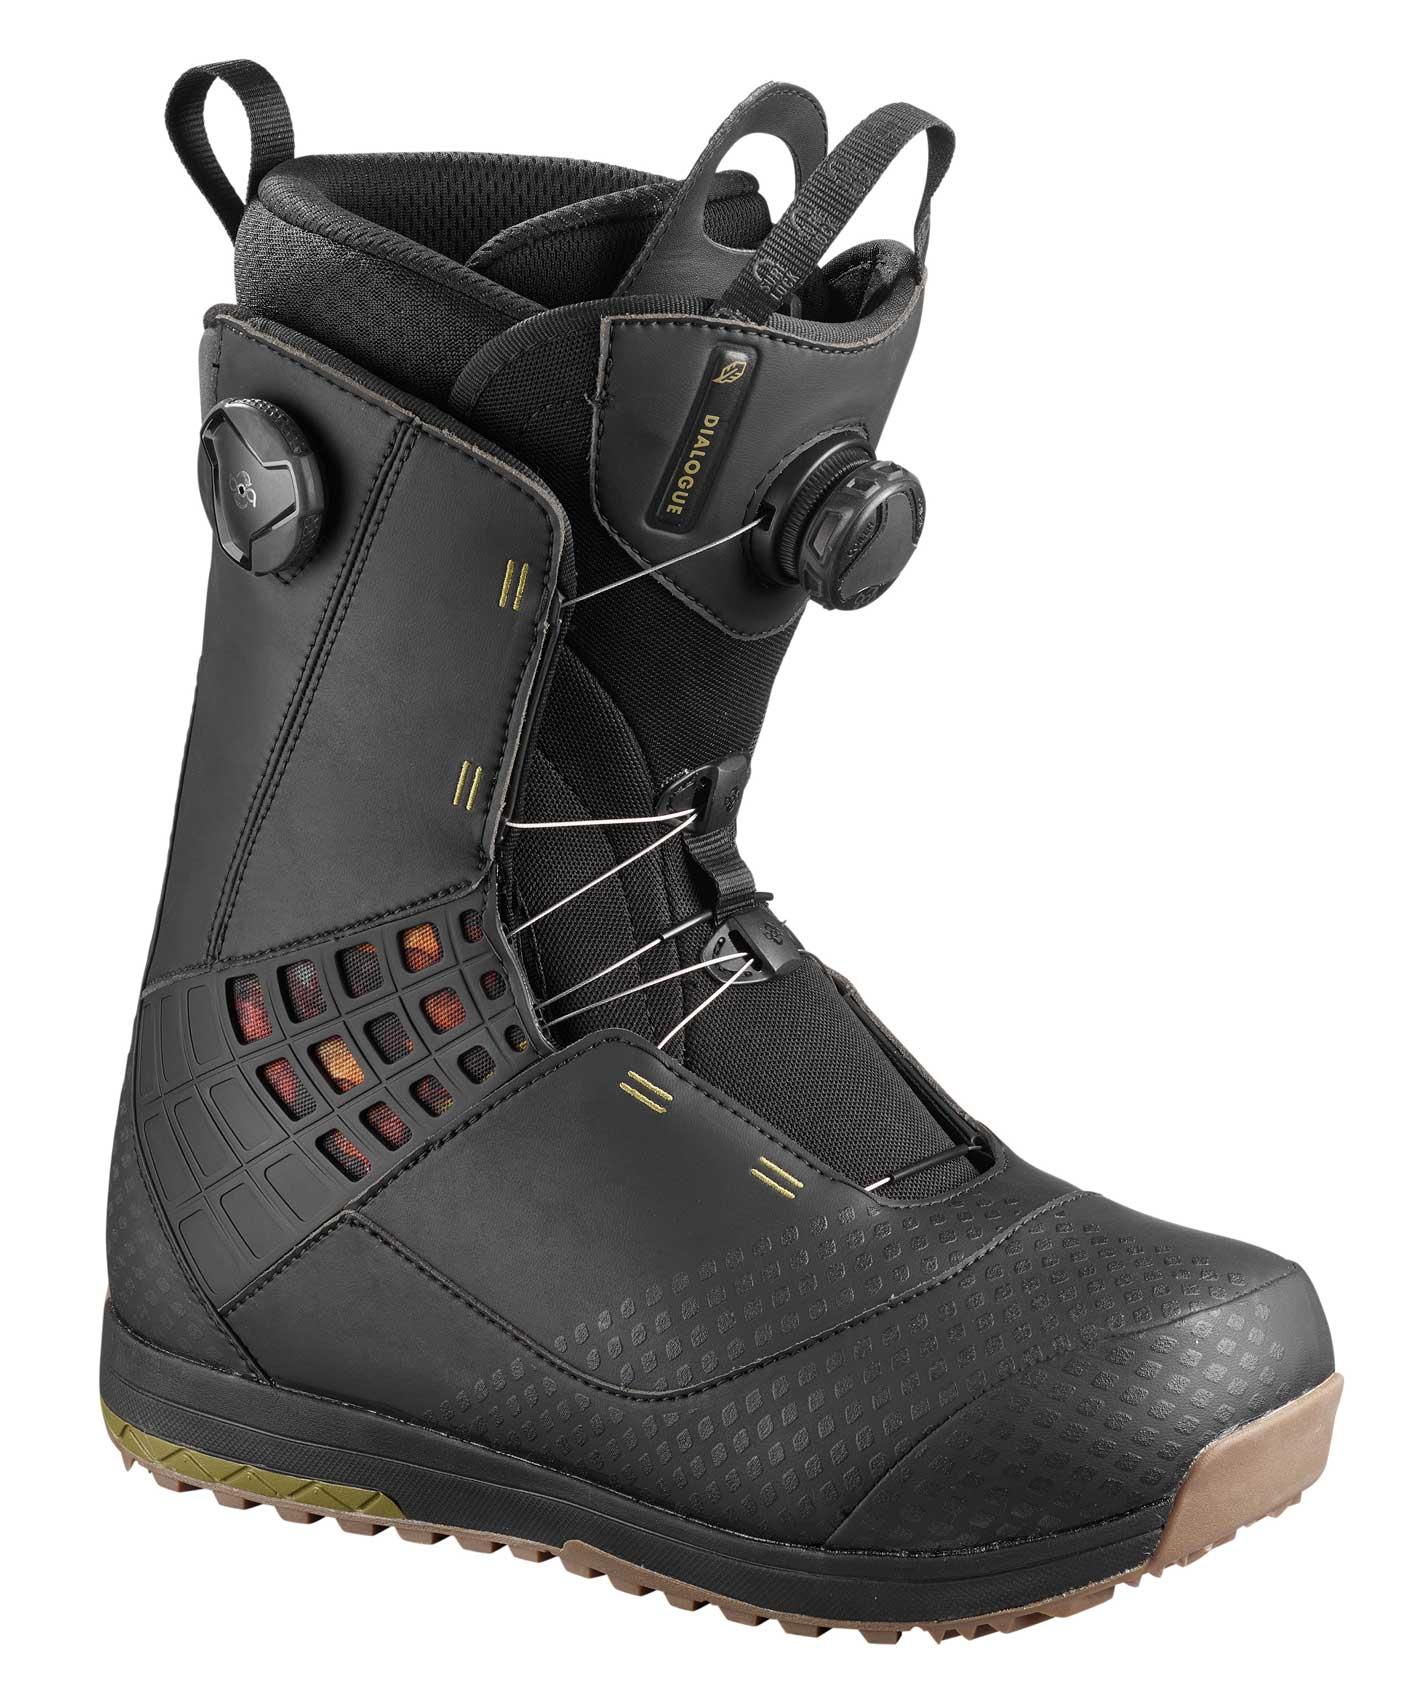 Salomon Dialogue Focus BOA Snowboard Boots review